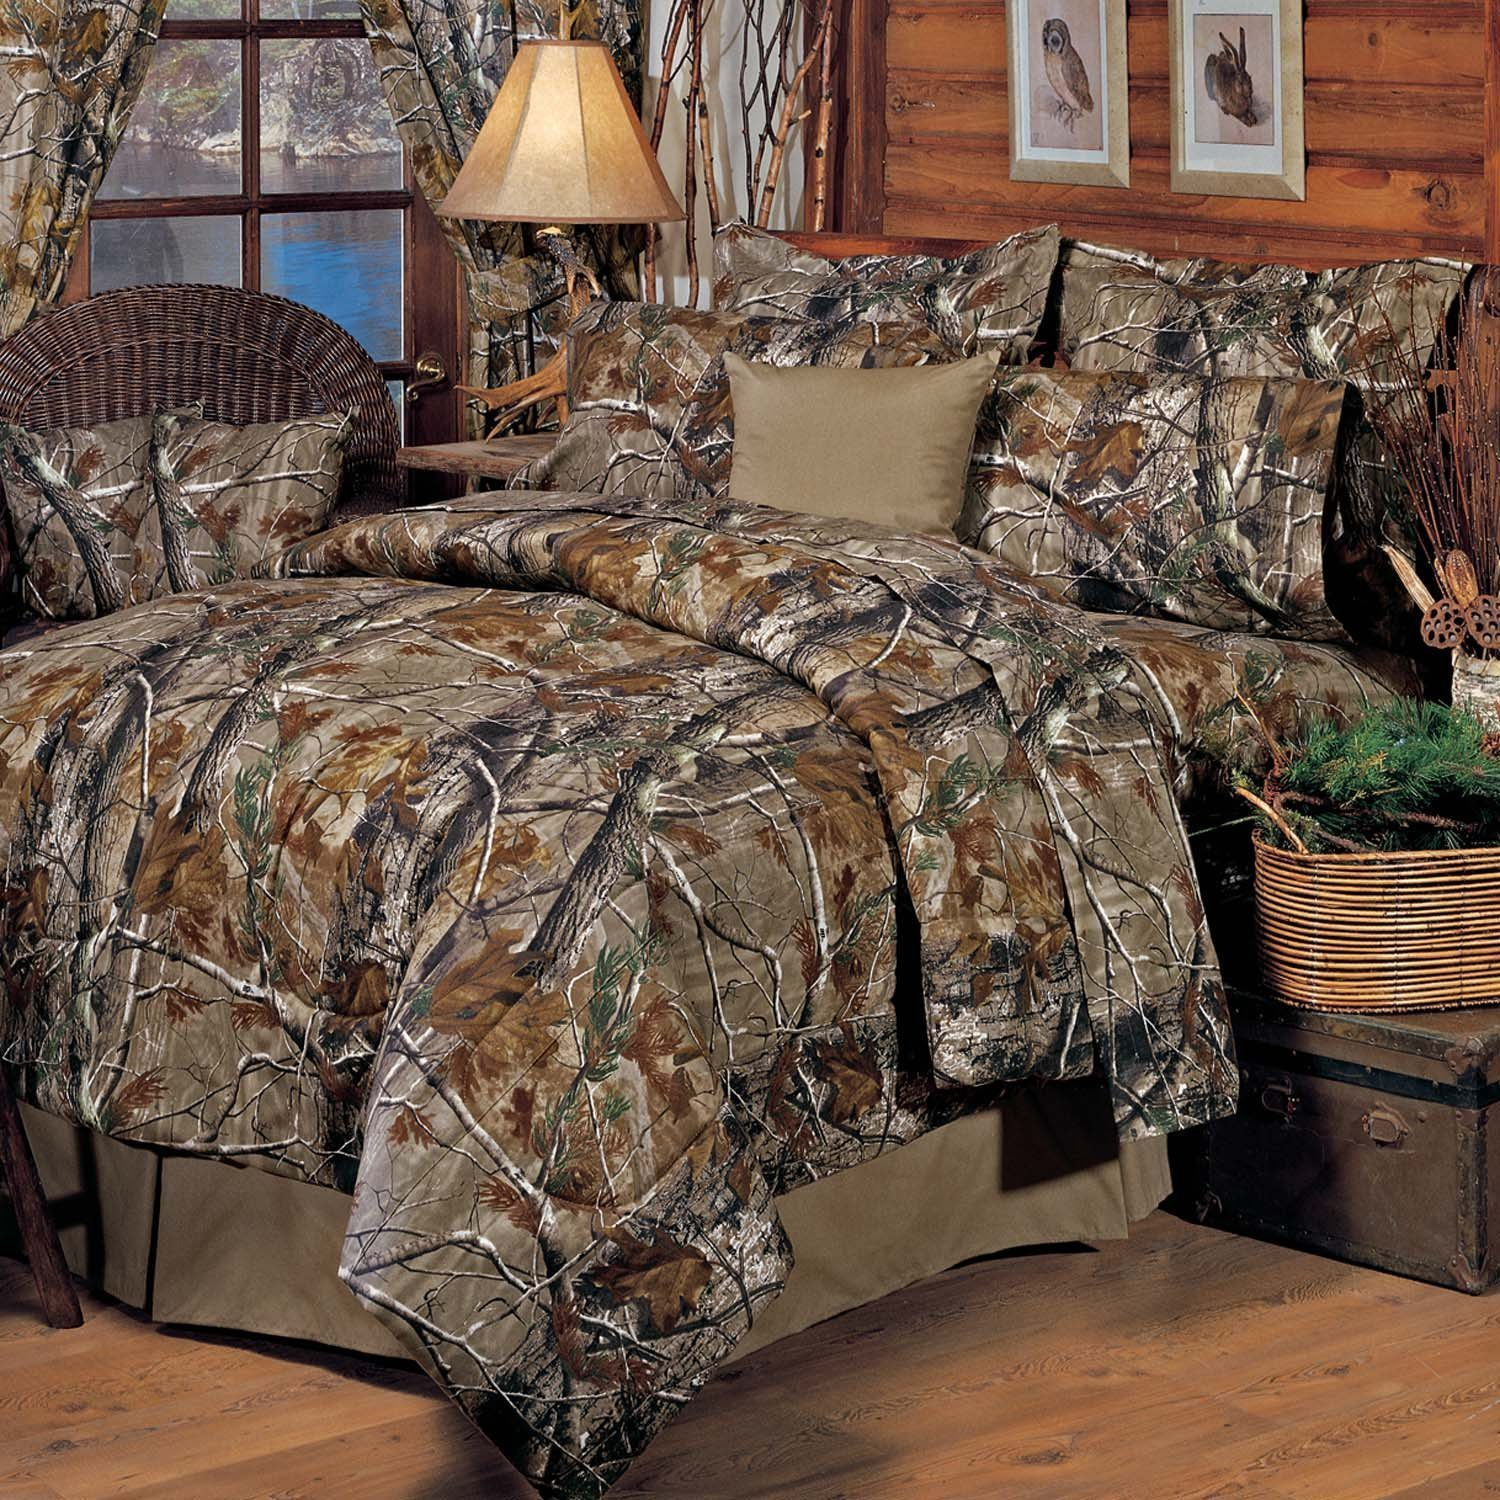 Best Bedding Sheet Set Realtree All Purpose Camo Camouflage With Pictures